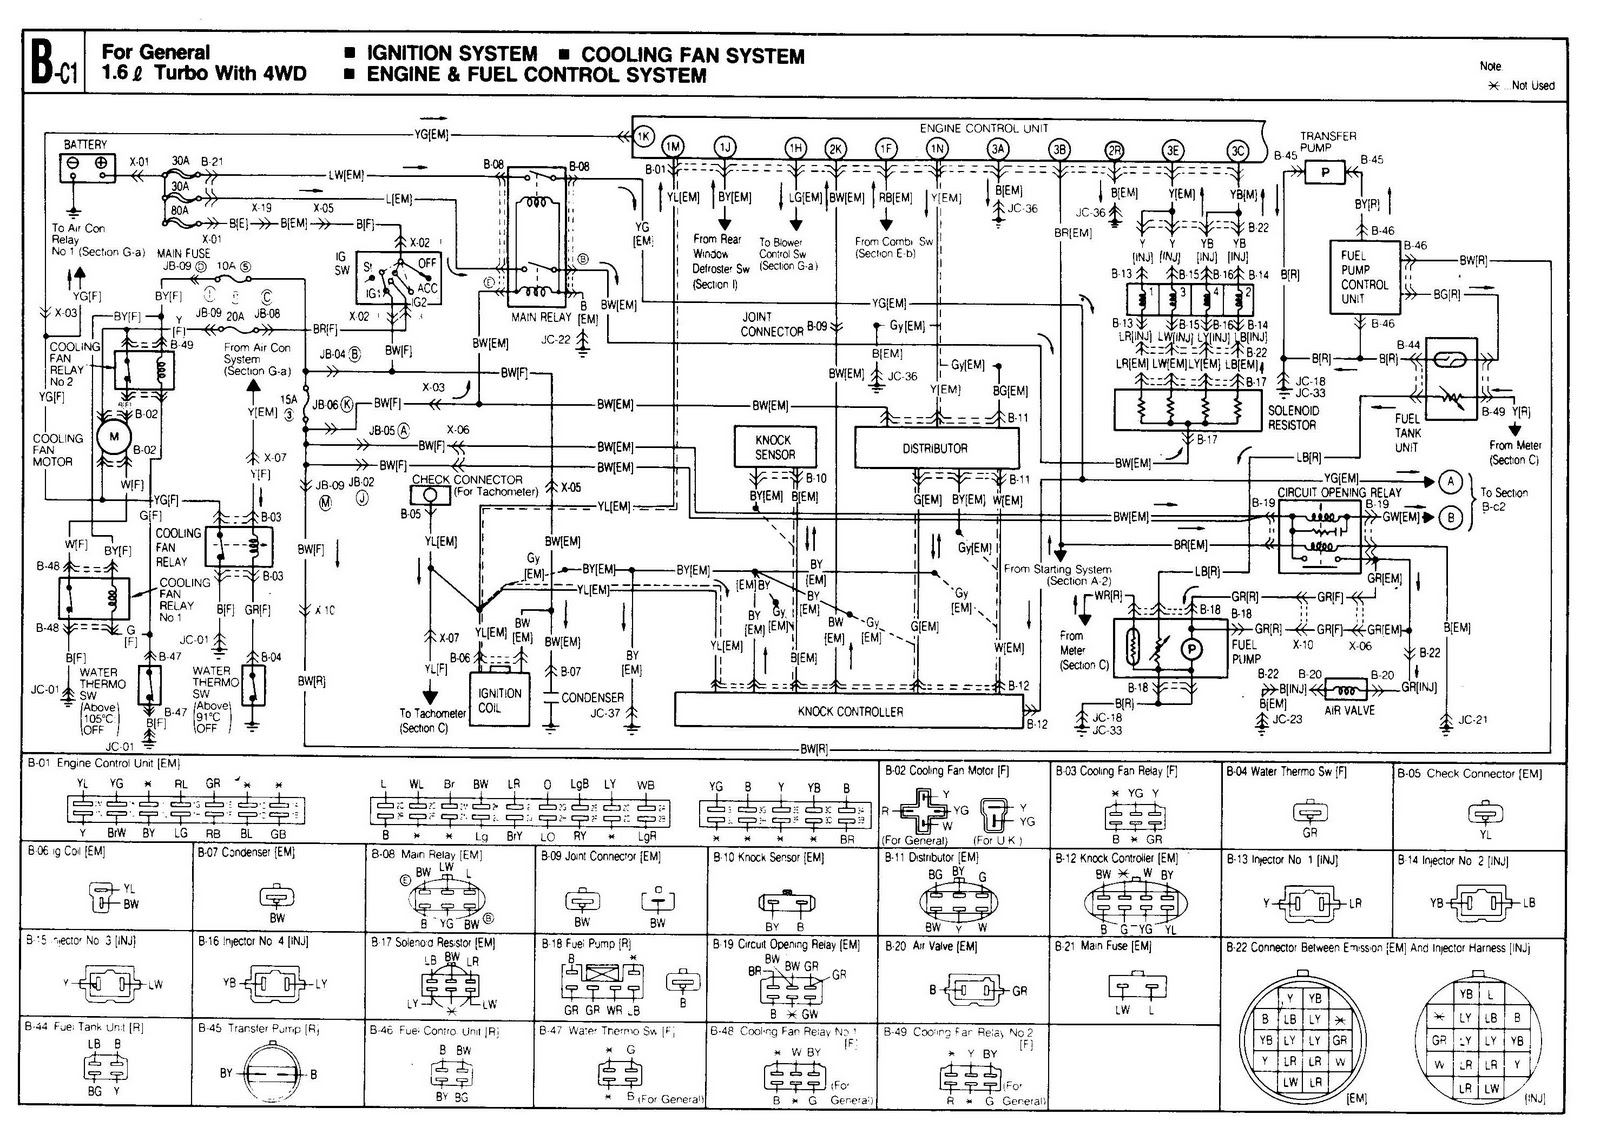 Daihatsu Terios 2004 Wiring Diagram About Karmann Ghia Fuse Box Sirion 2006 Opinions U2022 Perodua Viva